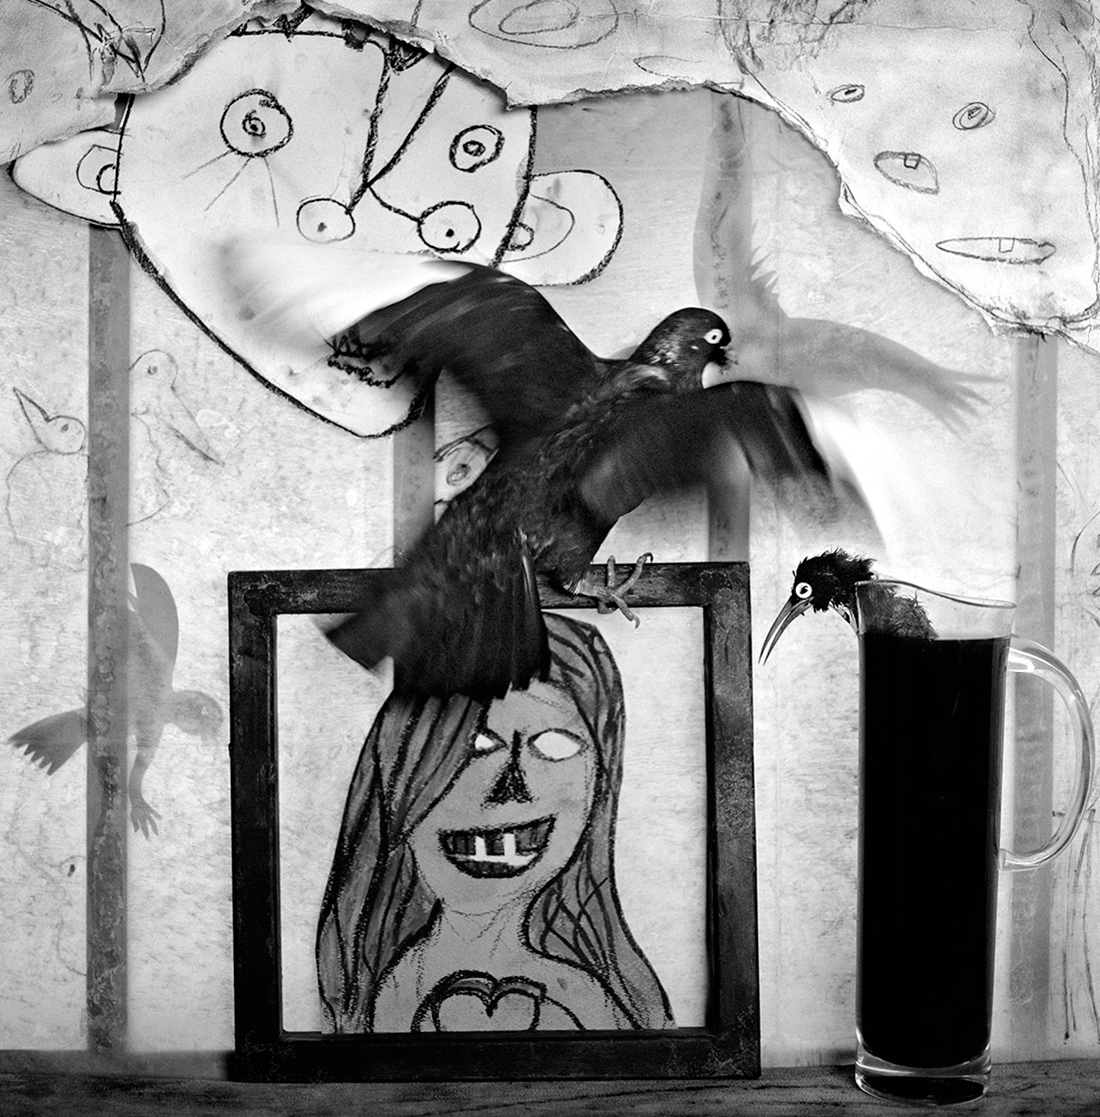 Roger ballen window shelf aip on paper 2012 courtesy galerie karsten greve st